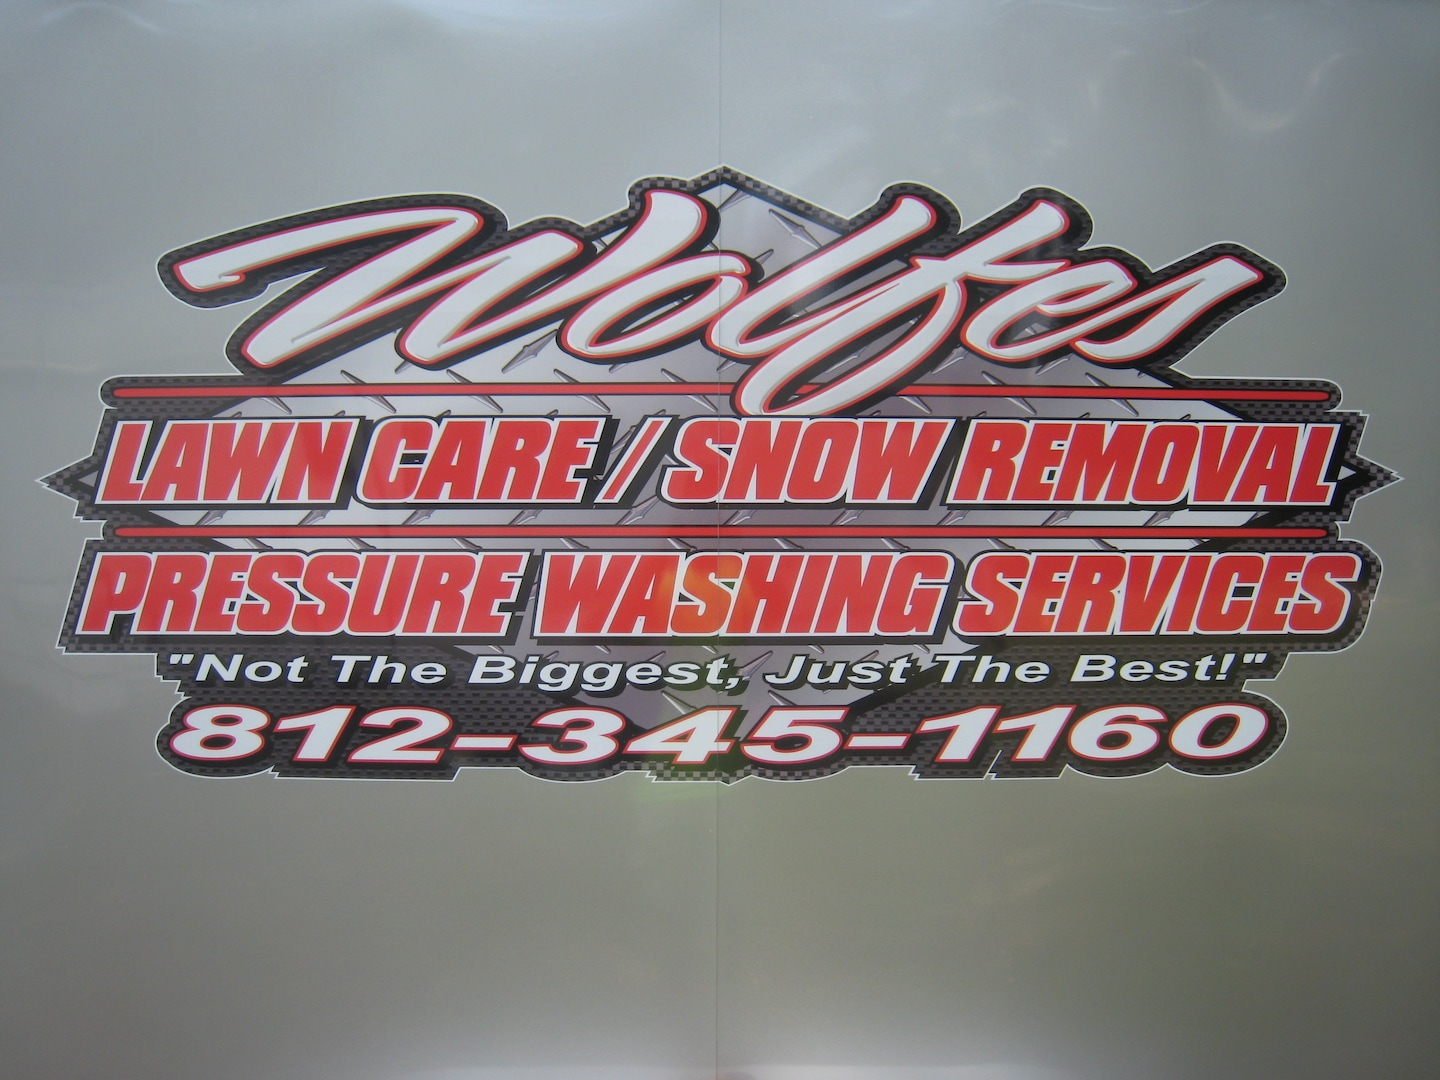 Wolfes Lawn Care-Snow Removal-Pressure washing